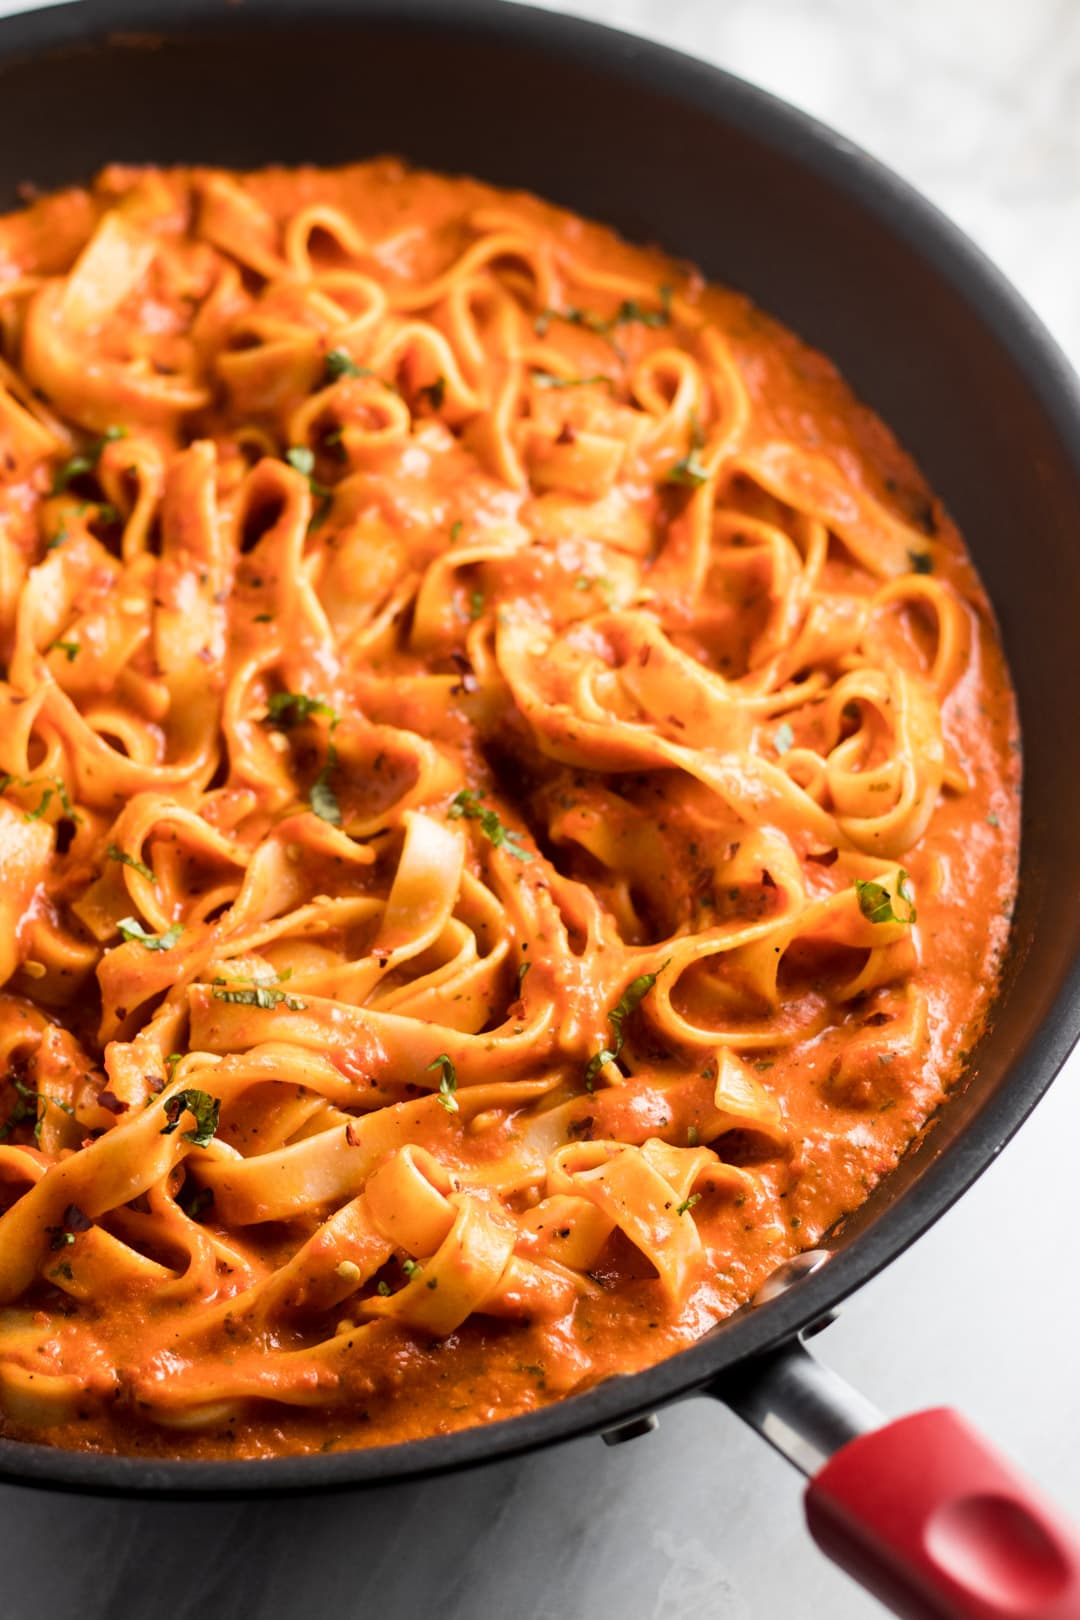 Fettuccine swimming in a roasted red pepper sauce and topped with finely sliced fresh basil.